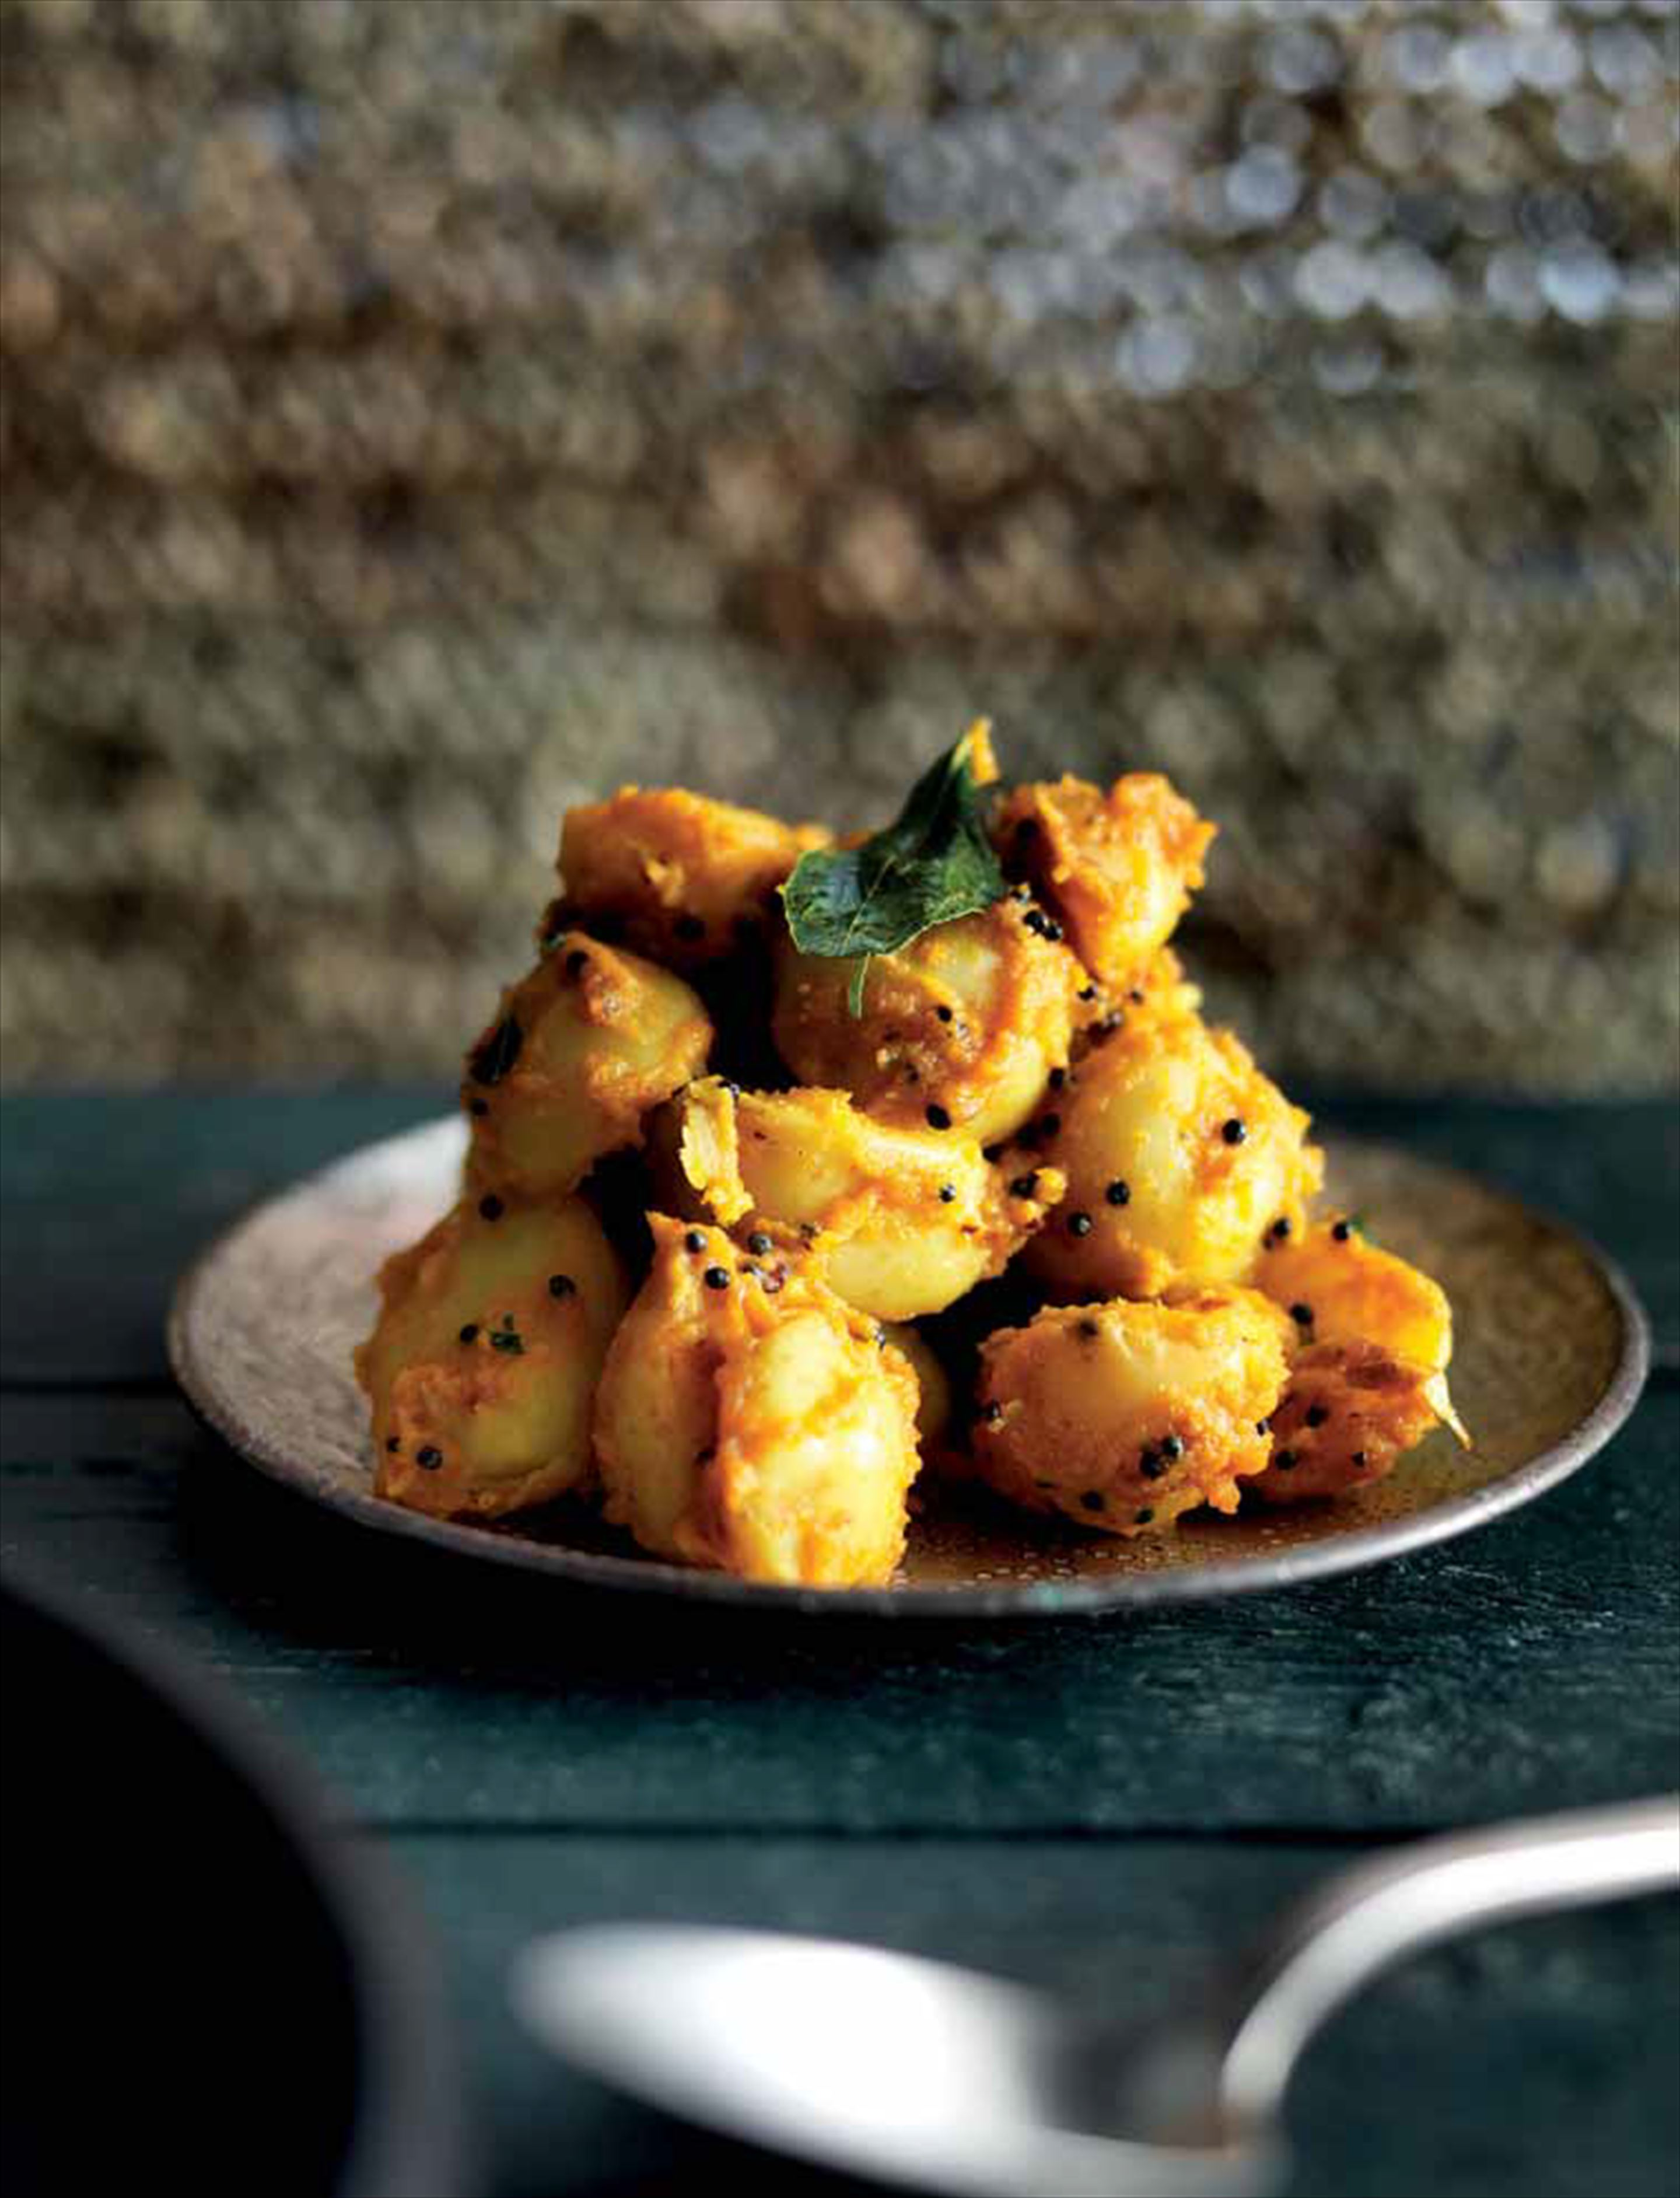 Spiced potatoes and coconut